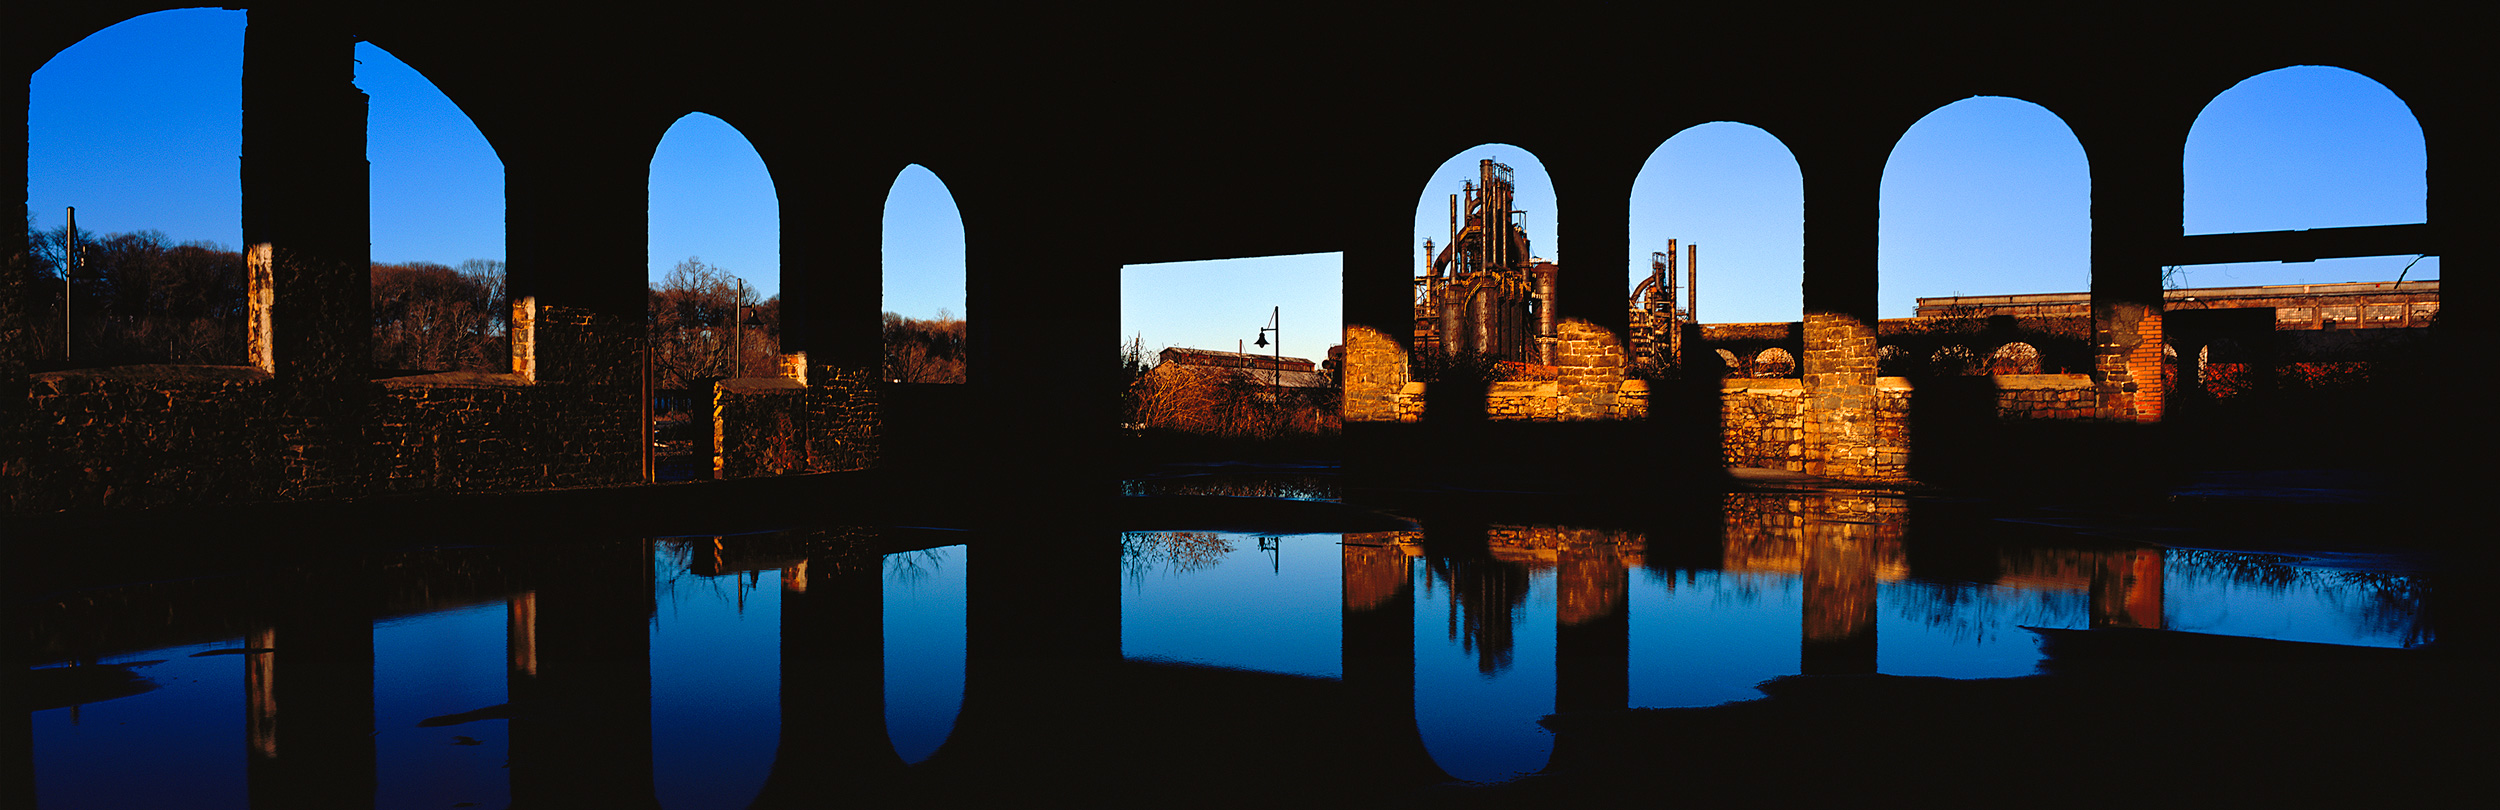 Alyssha Csuk, Bethlehem Steel Chrome VI, Bethlehem Pennsylvania , 2006 44.5 x 19.5 inches Transparency film, Giclee print